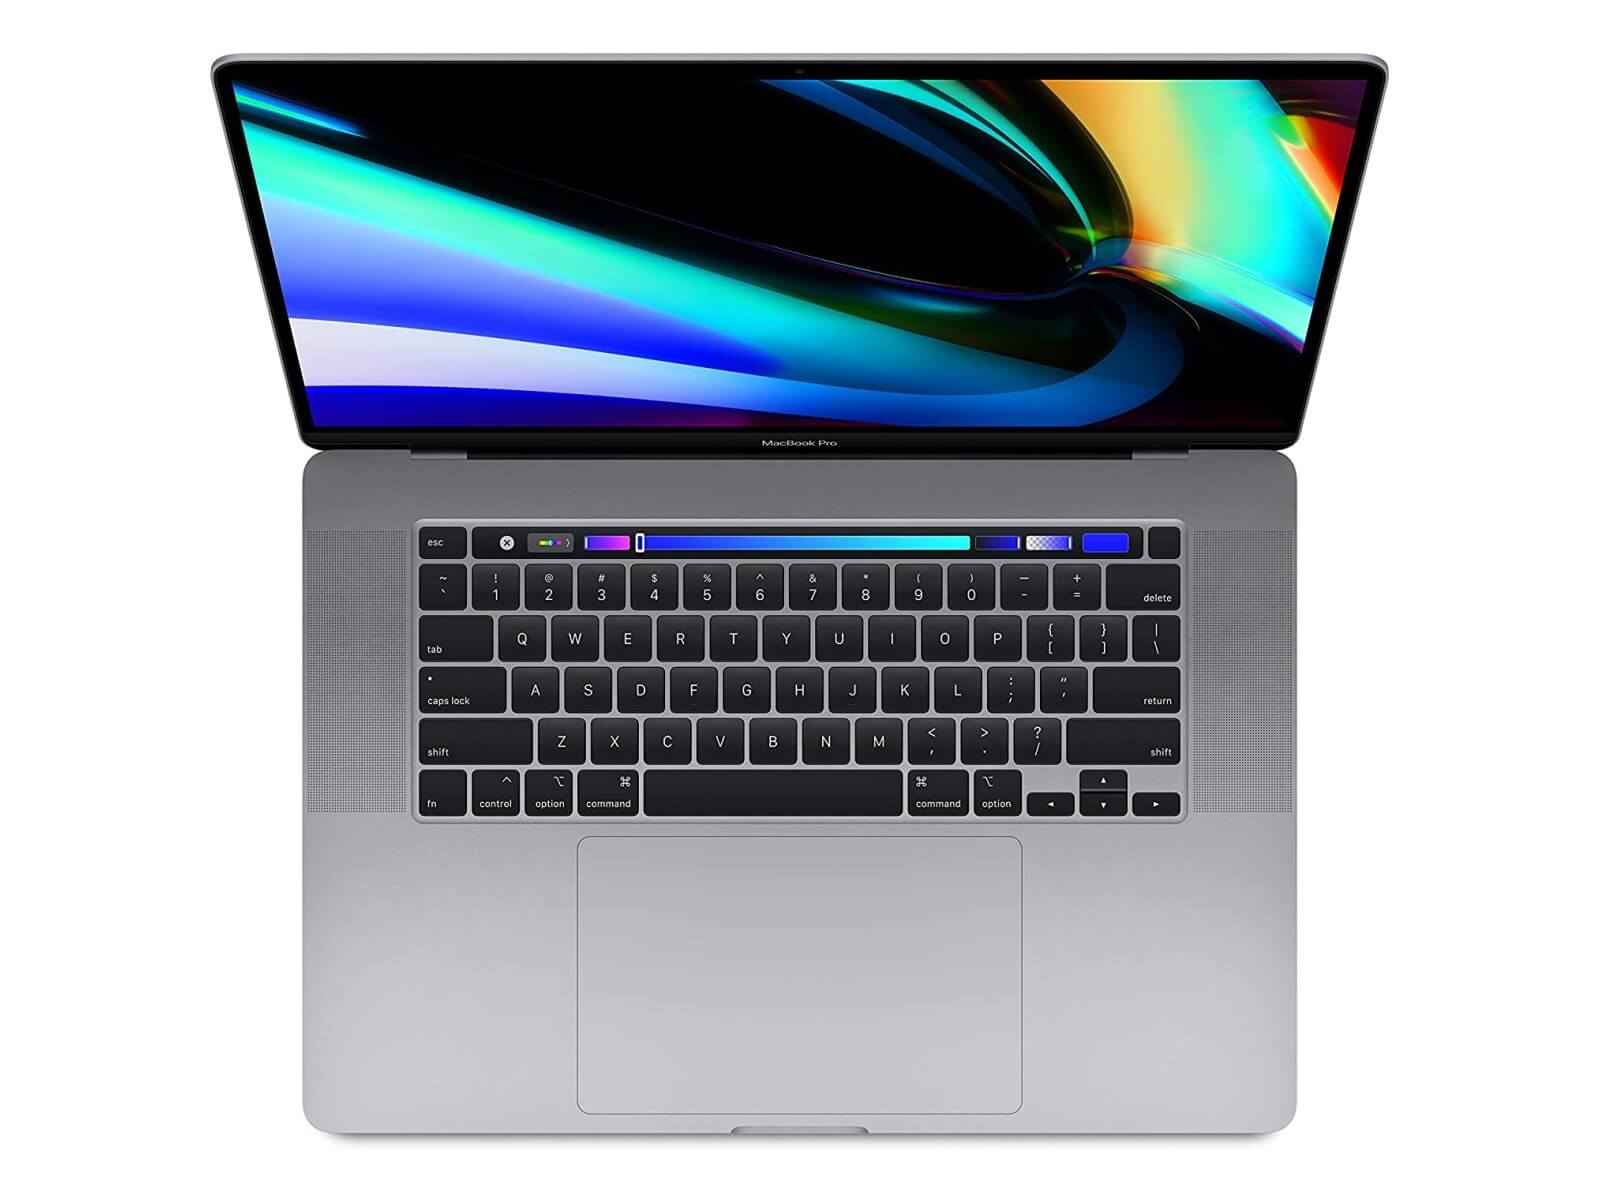 MacBook Pro 16″ (2019) 2.4ghz i9/64gb/1TB